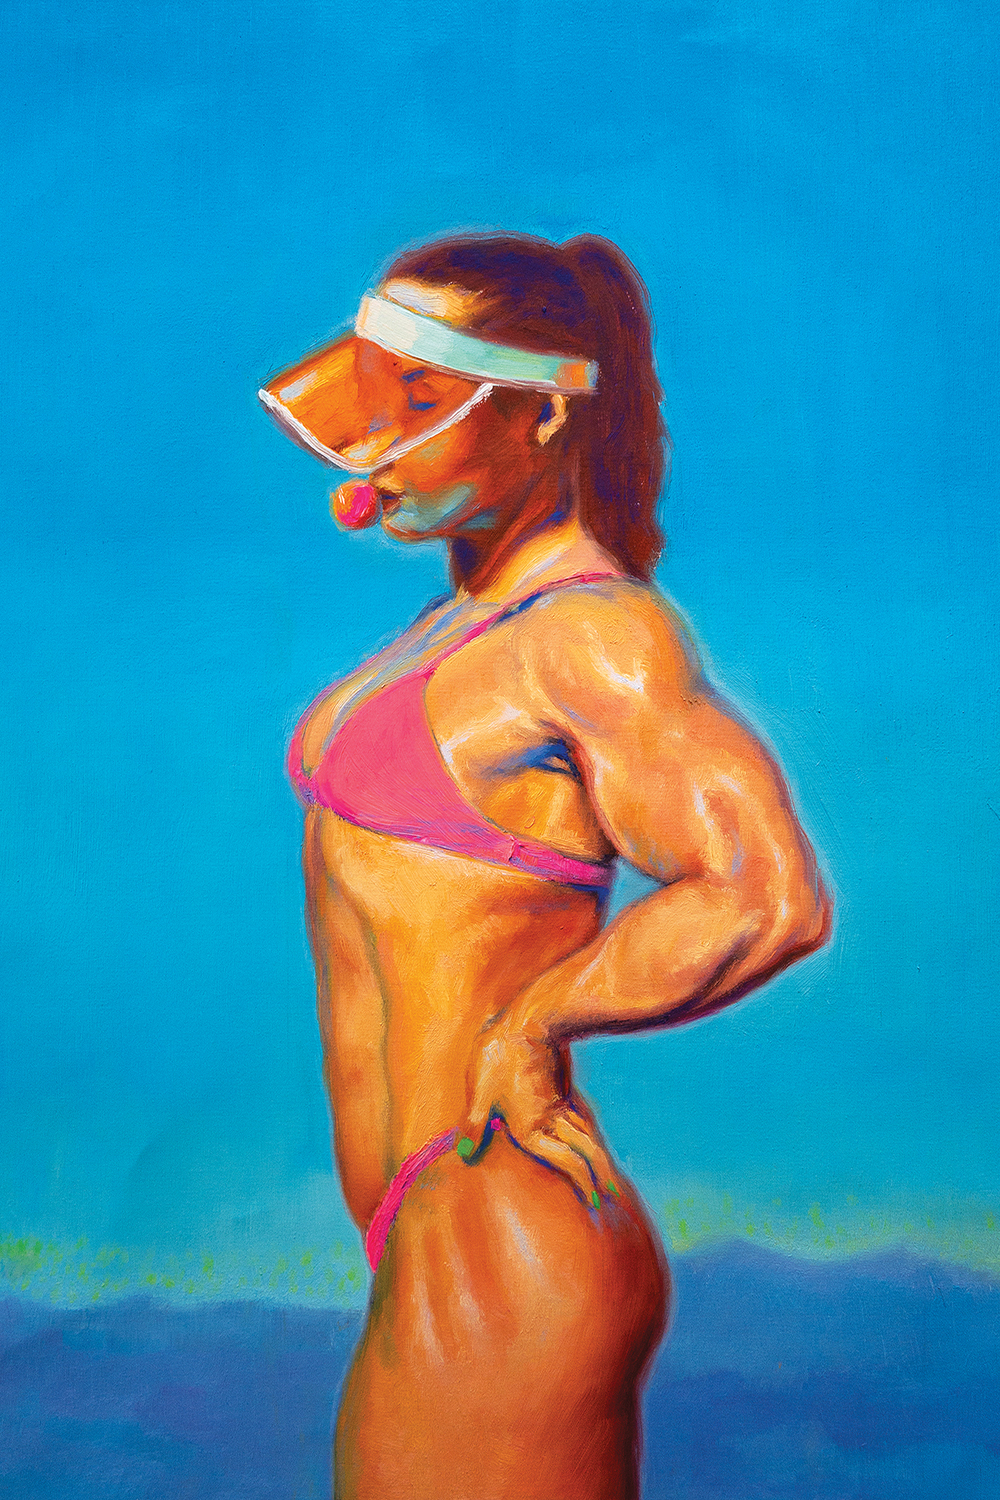 a muscular woman wearing a pink bikini and sun visor while blowing a bubble with gum